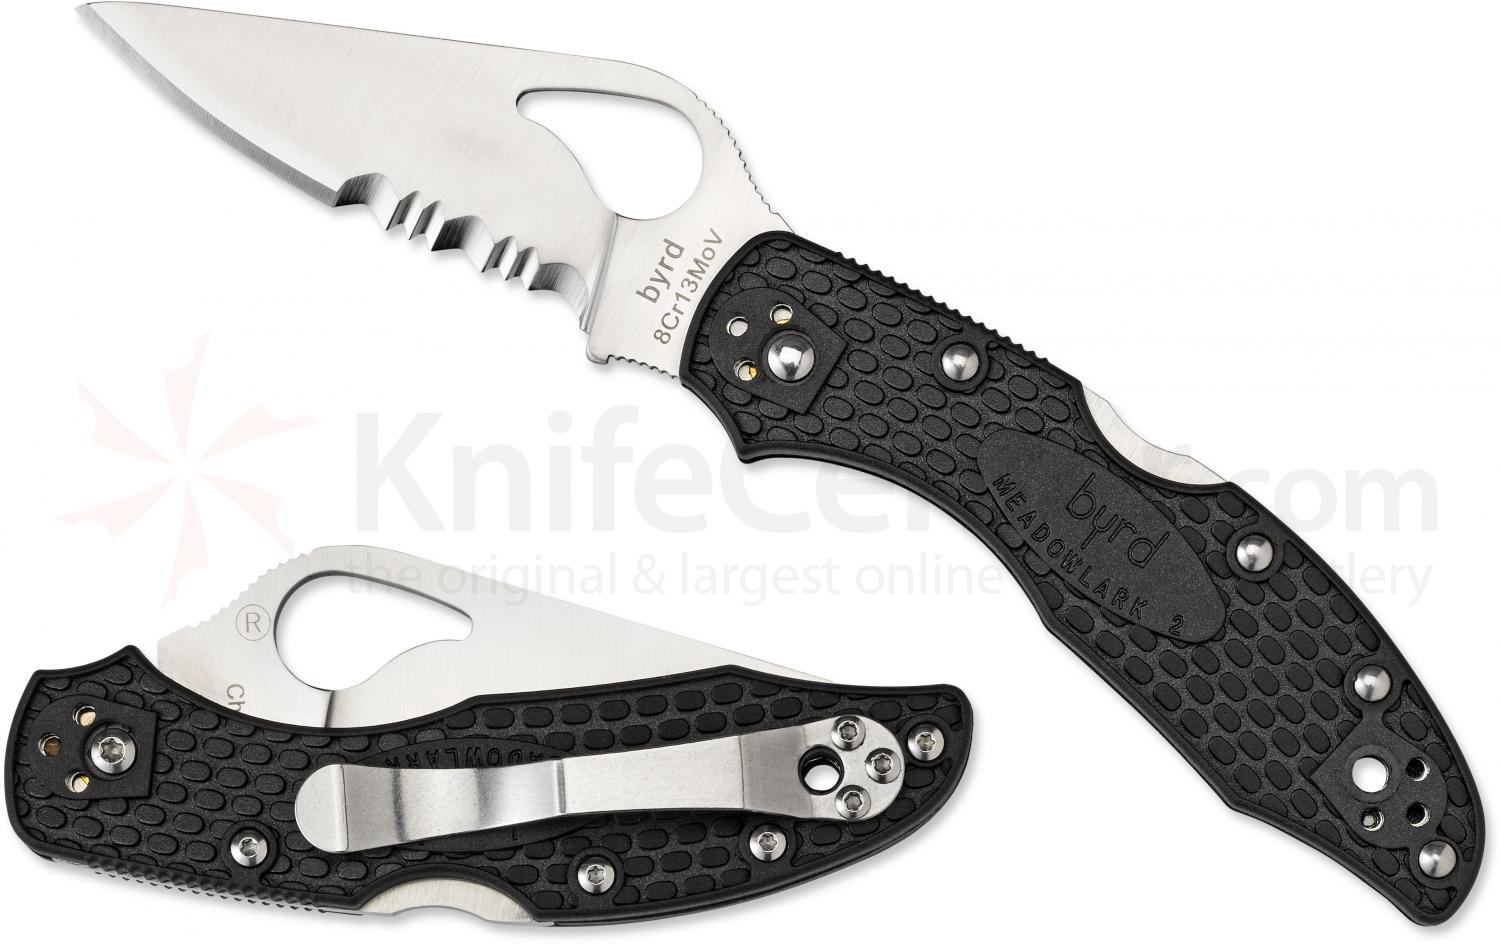 Spyderco BY04PSBK2 Byrd Folding Knife Meadowlark 2 2-7/8 inch Combo Flat-Ground Blade, Black FRN Handles